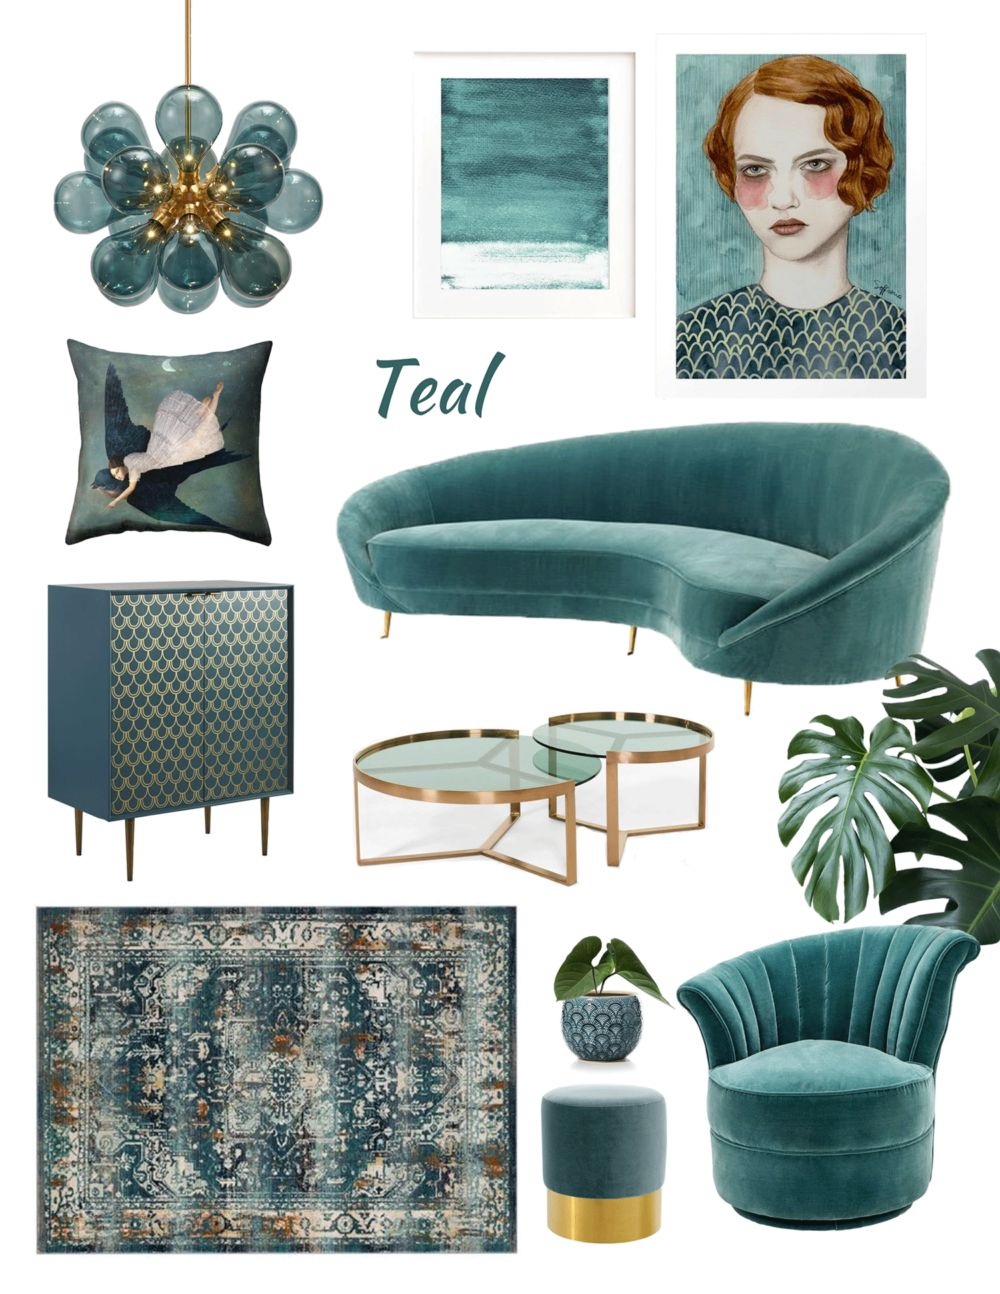 Wall Art Trends For 2019 2020 All You Need To Know About Teal Living Rooms Teal Living Room Decor Dark Teal Living Room #teal #wall #decor #for #living #room